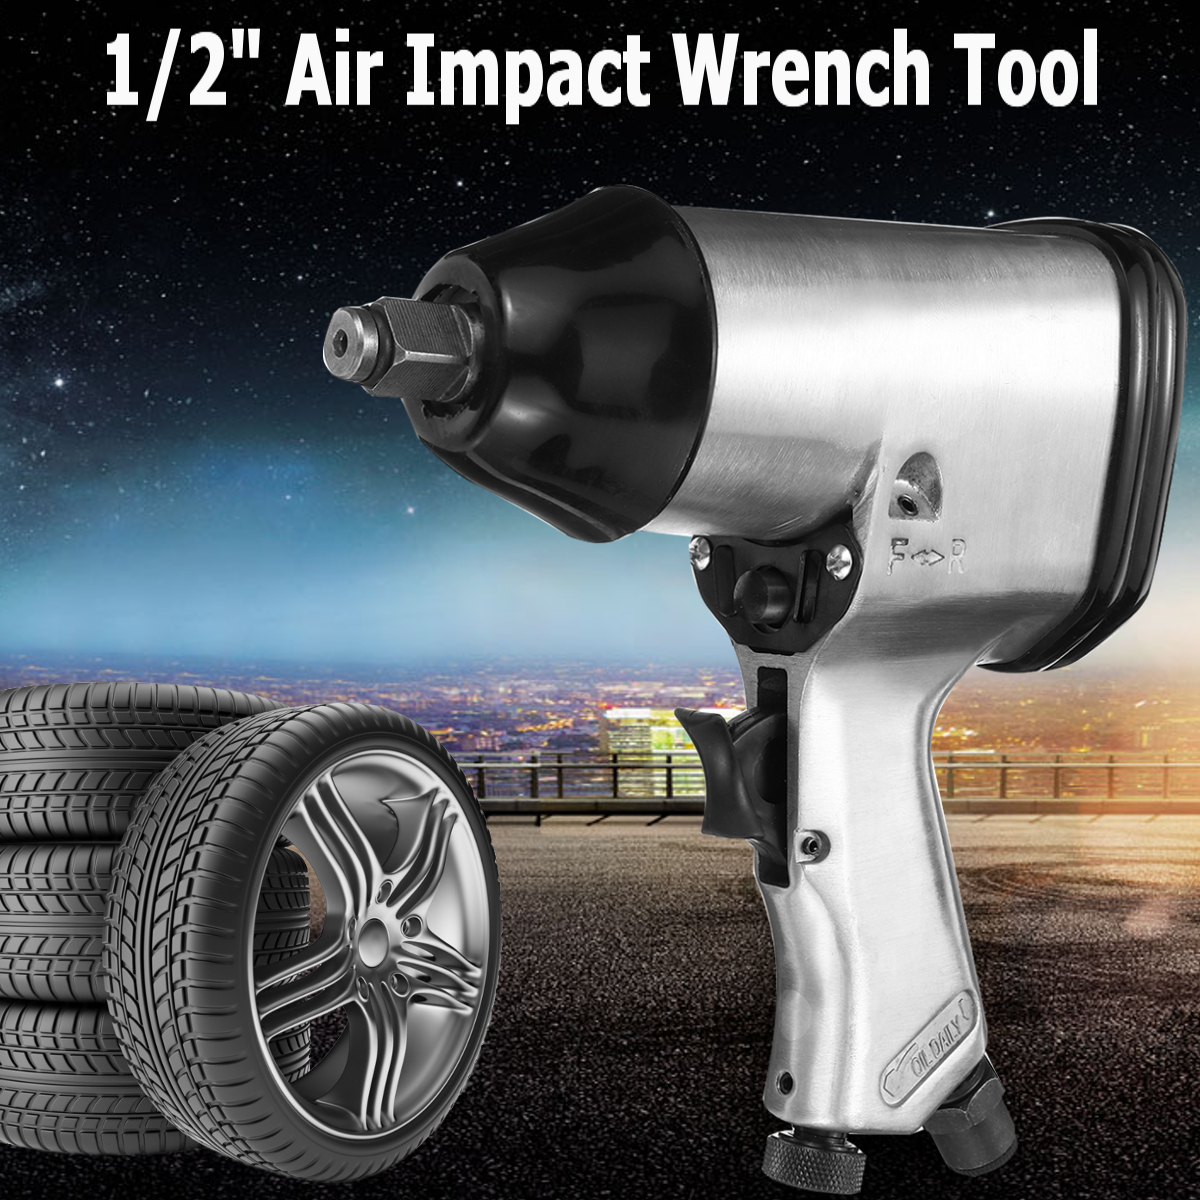 1/2Drive Heavy Duty Pneumatic Air Impact Wrench Tool For Car Wheel Repairing Die Cast Aluminum High Torque Low Noise 4CFM@90PSI high quality heavy duty 1 2 inch pneumatic torque wrench tool air impact wrench 72kg